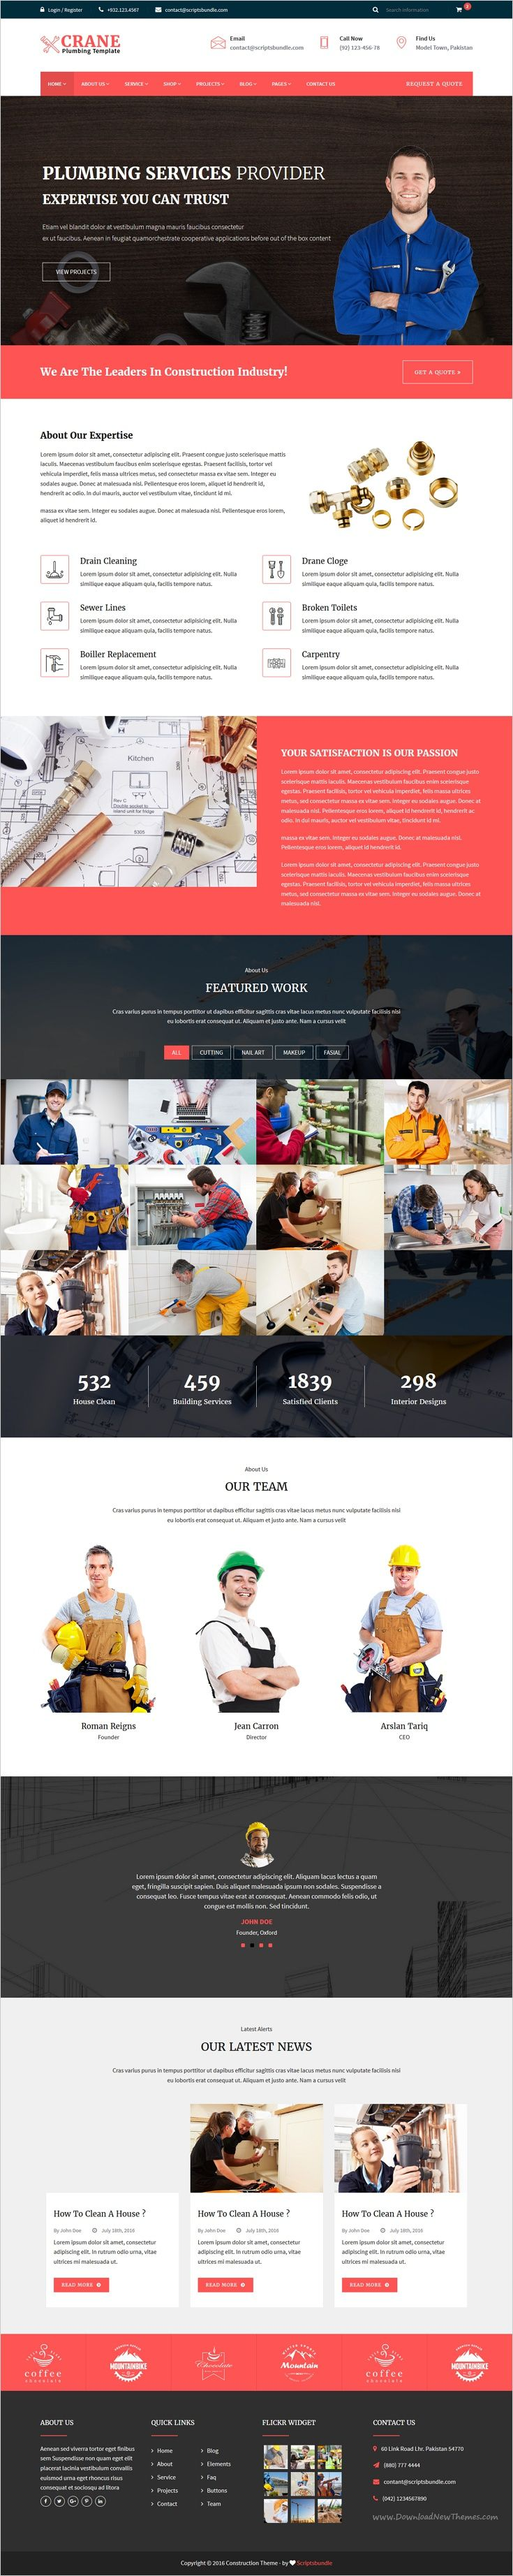 14 best plumbing landing page design images on Pinterest ...